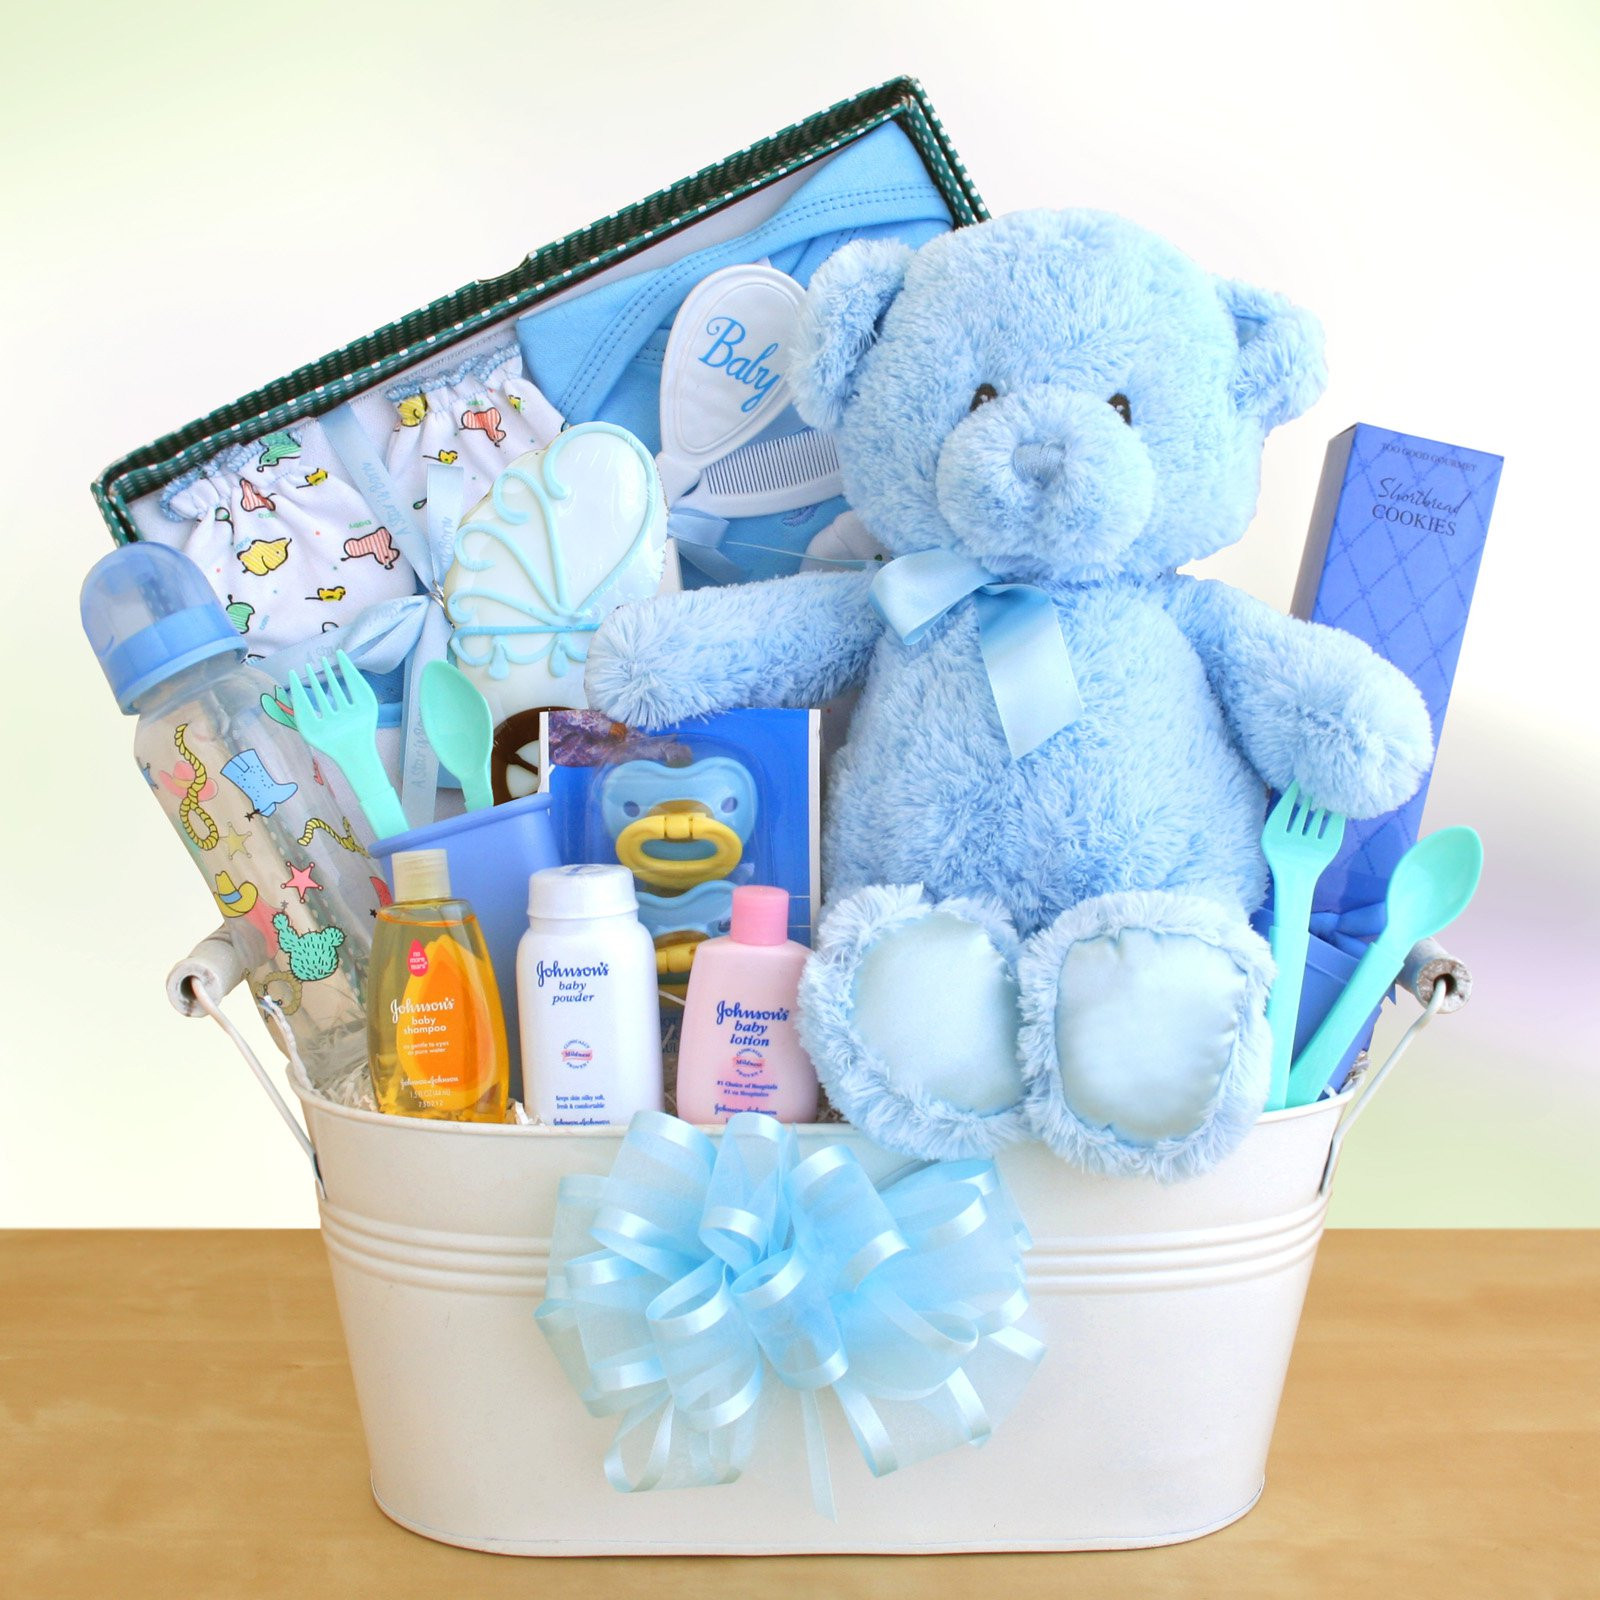 Best ideas about New Baby Boy Gift Ideas . Save or Pin New Arrival Baby Boy Gift Basket Gift Baskets by Now.